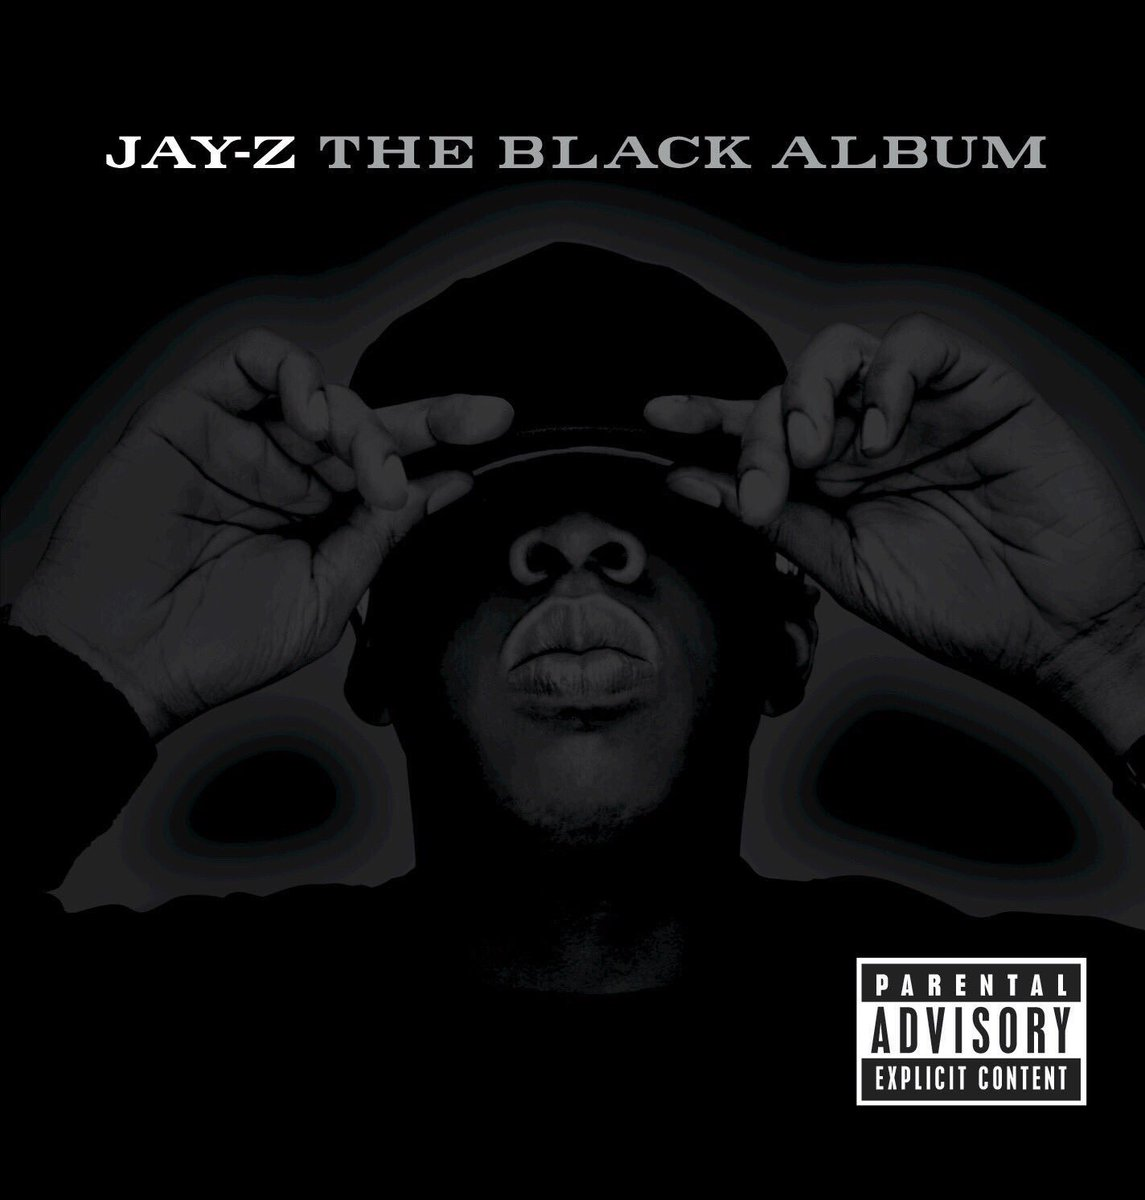 15 years today Jay-Z dropped what we all believed would be Hova's last album at the time. #TheBlackAlbum  What's your favorite track on the project?